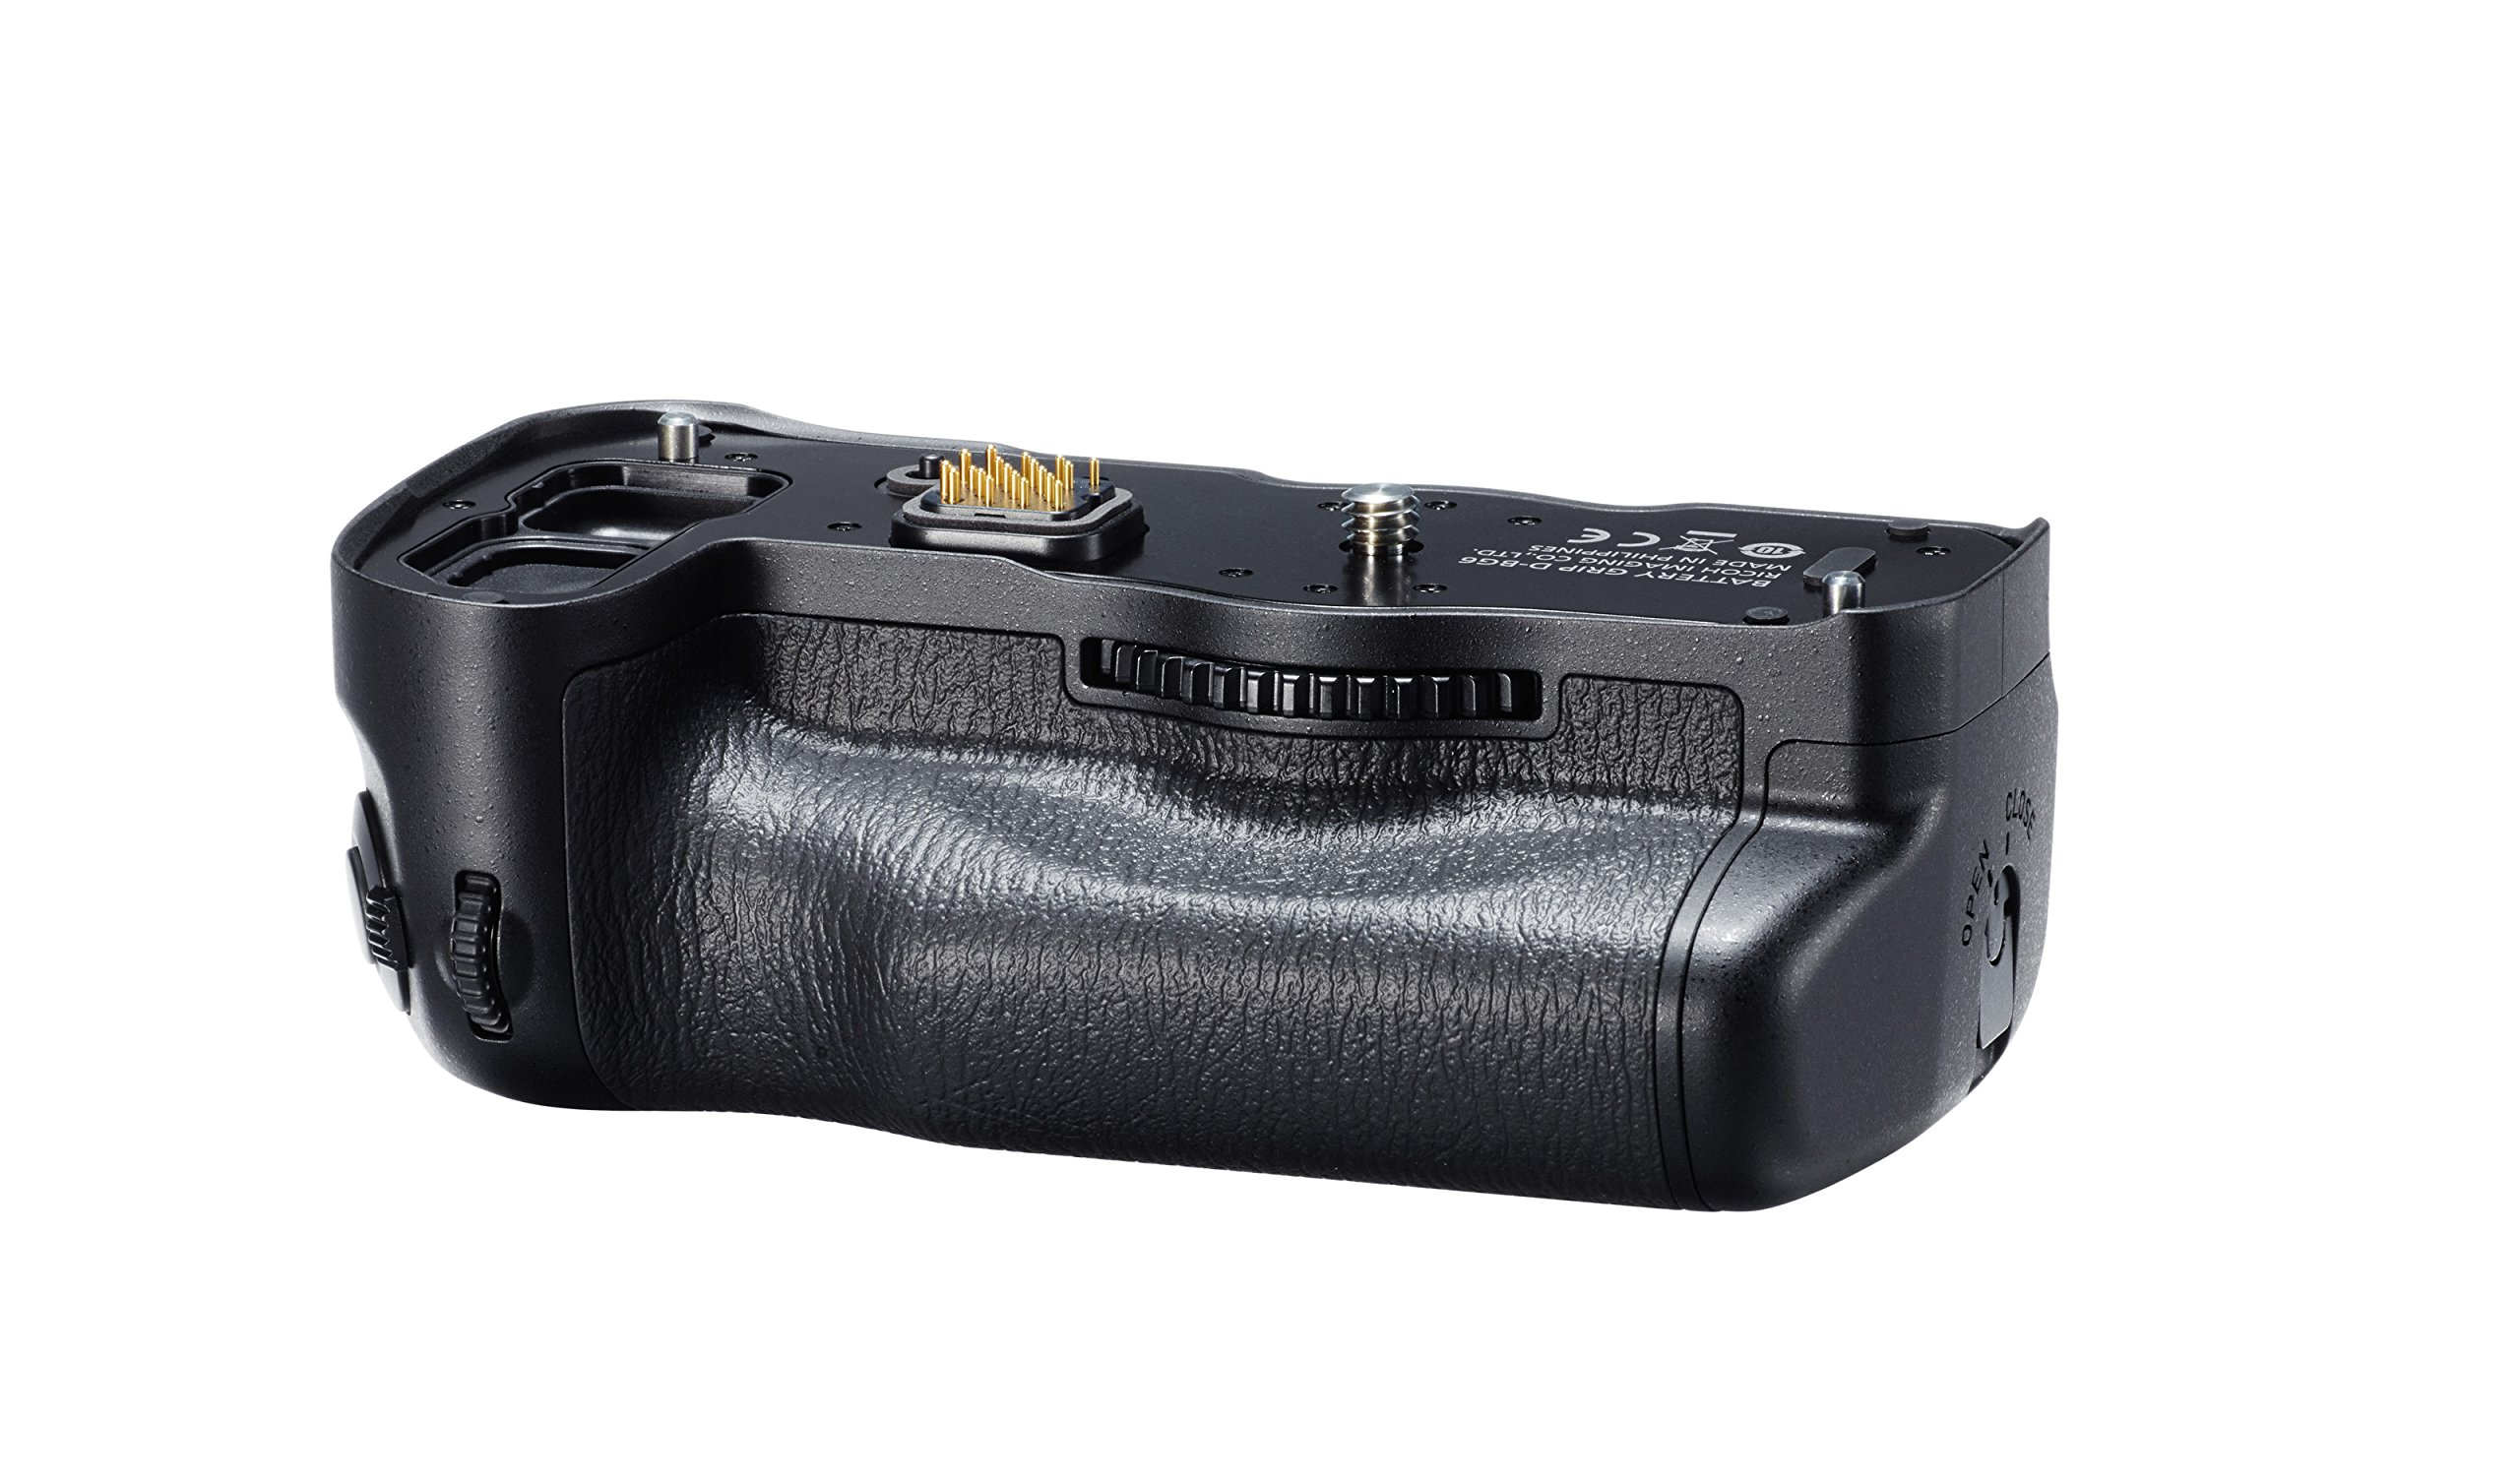 Pentax D-BG6 Digital Camera Battery Grips (Black)